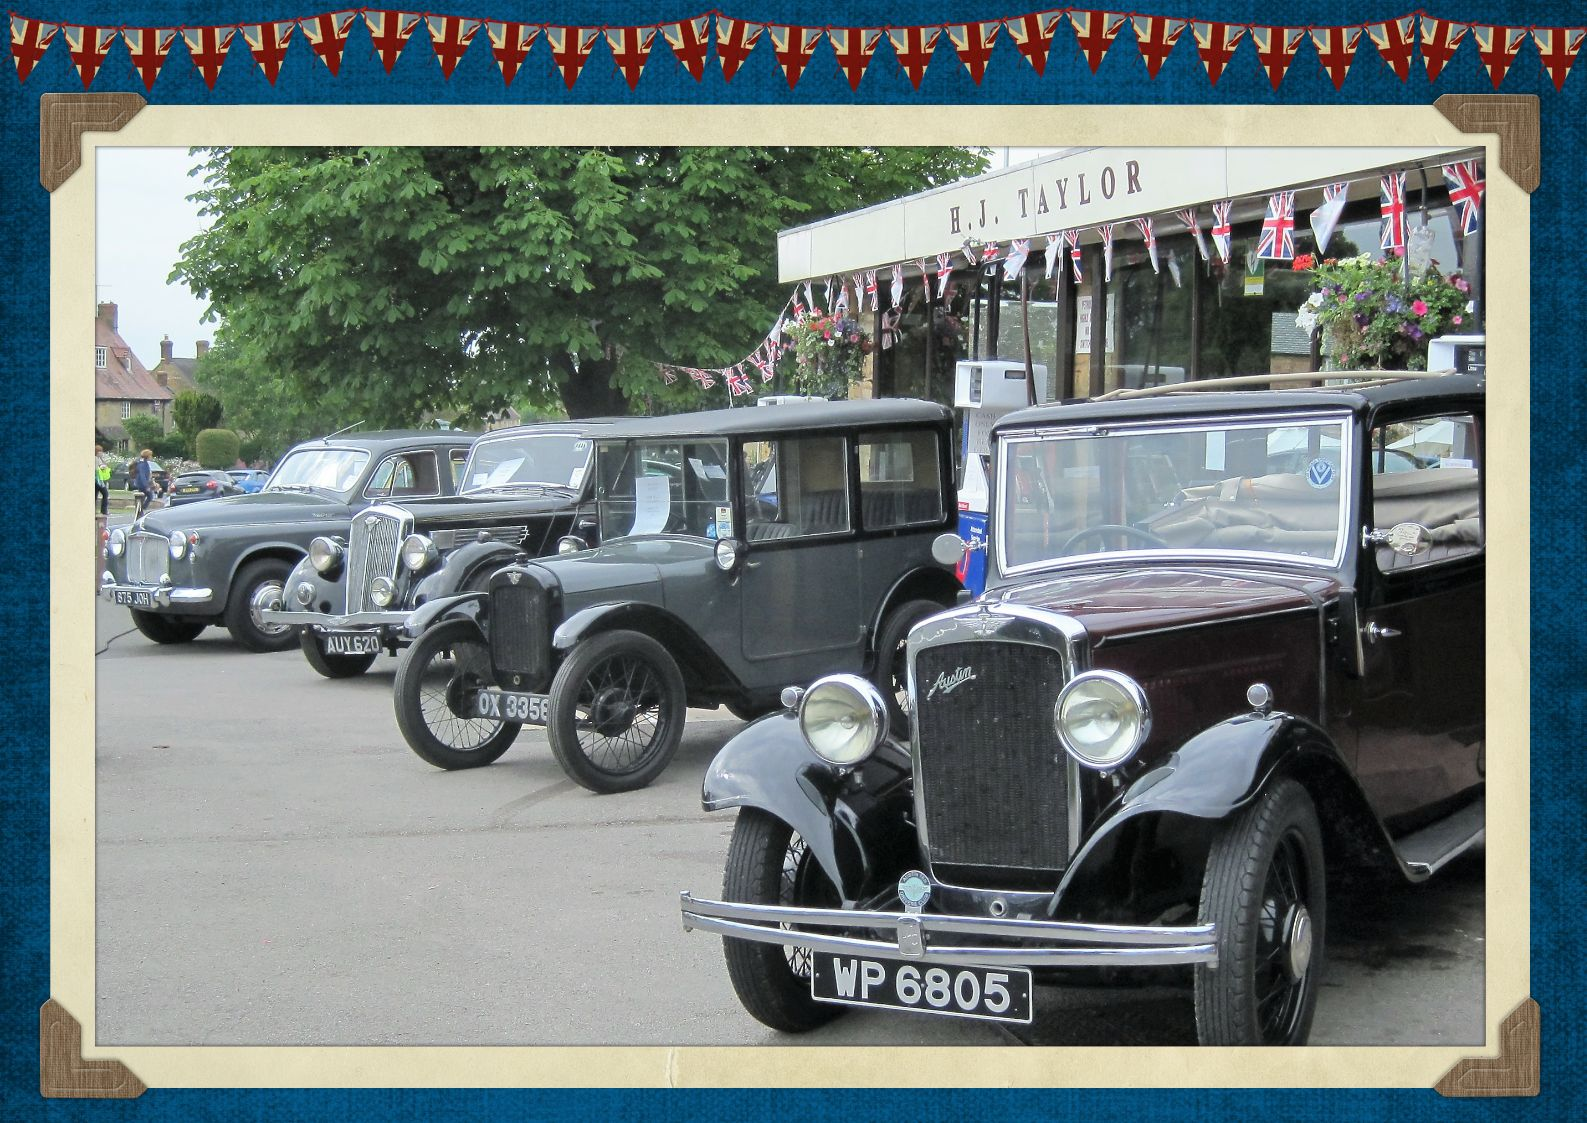 Vintage cars for the Queen